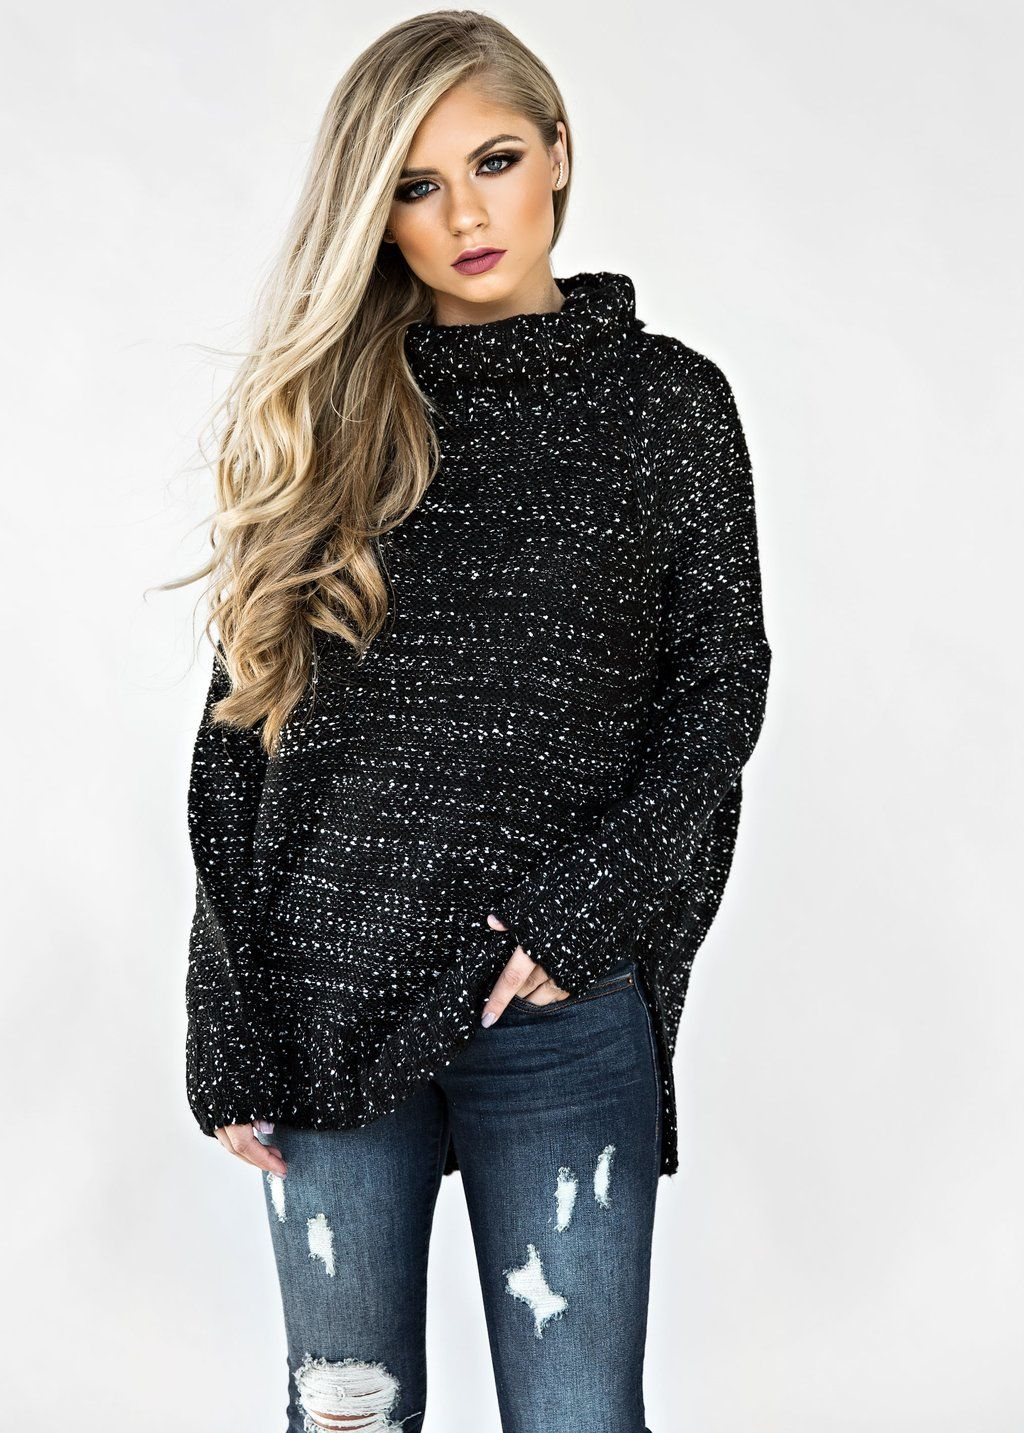 Static Snow Turtleneck Sweater, Blonde Hair, Fashion, Style ...